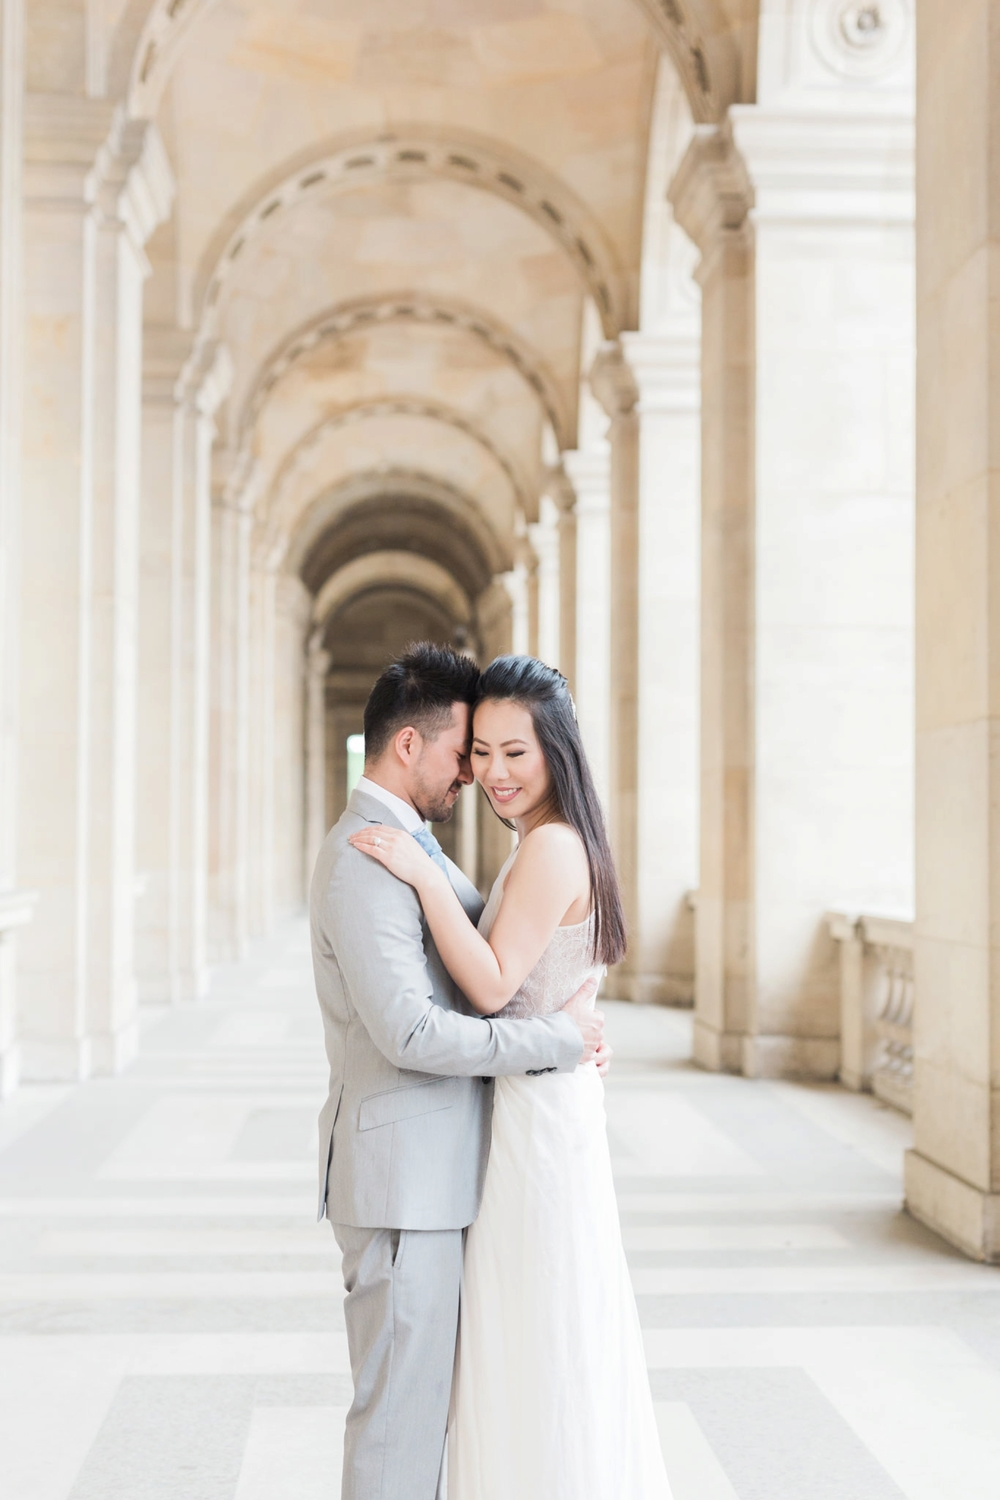 Suzanne_li_photography_paris_engagement_shoot_0011.jpg